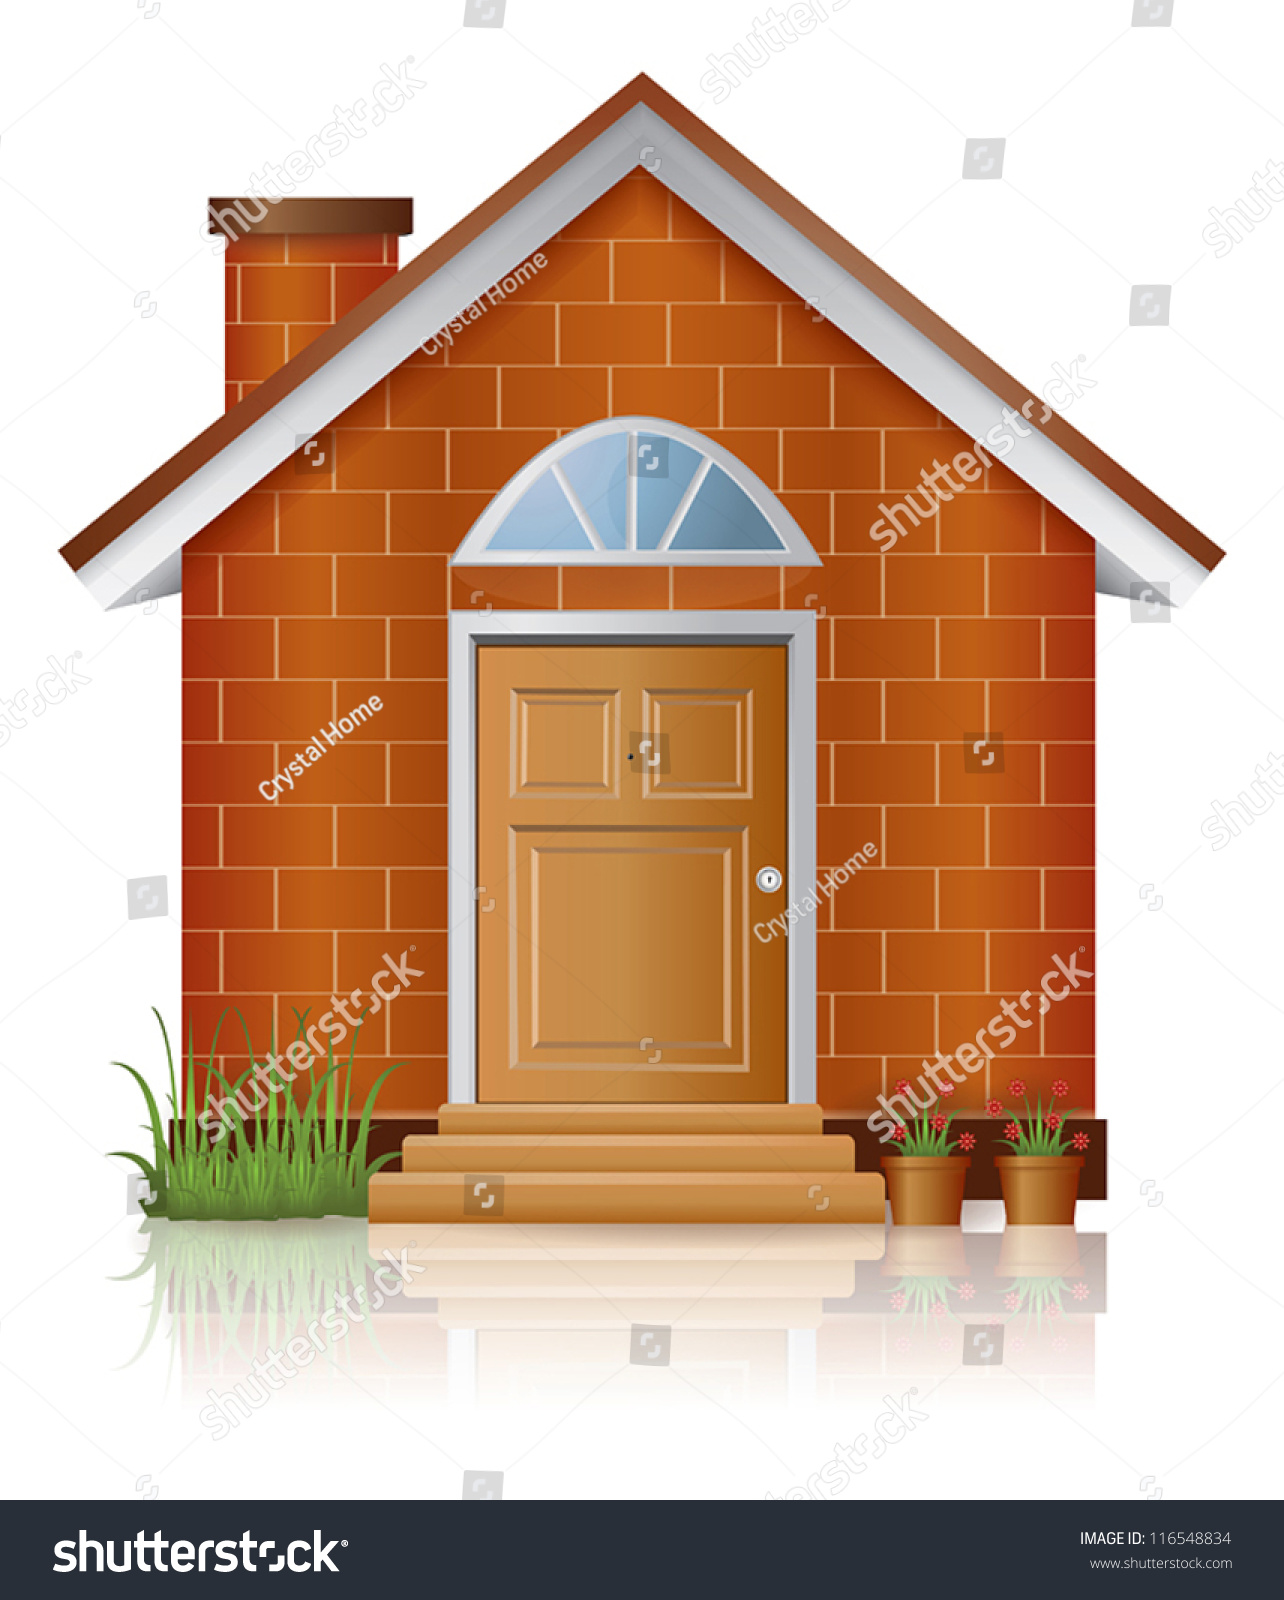 Brick Vector Picture Brick Veneers: Cute Little Vintage Retro Brick House Stock Vector